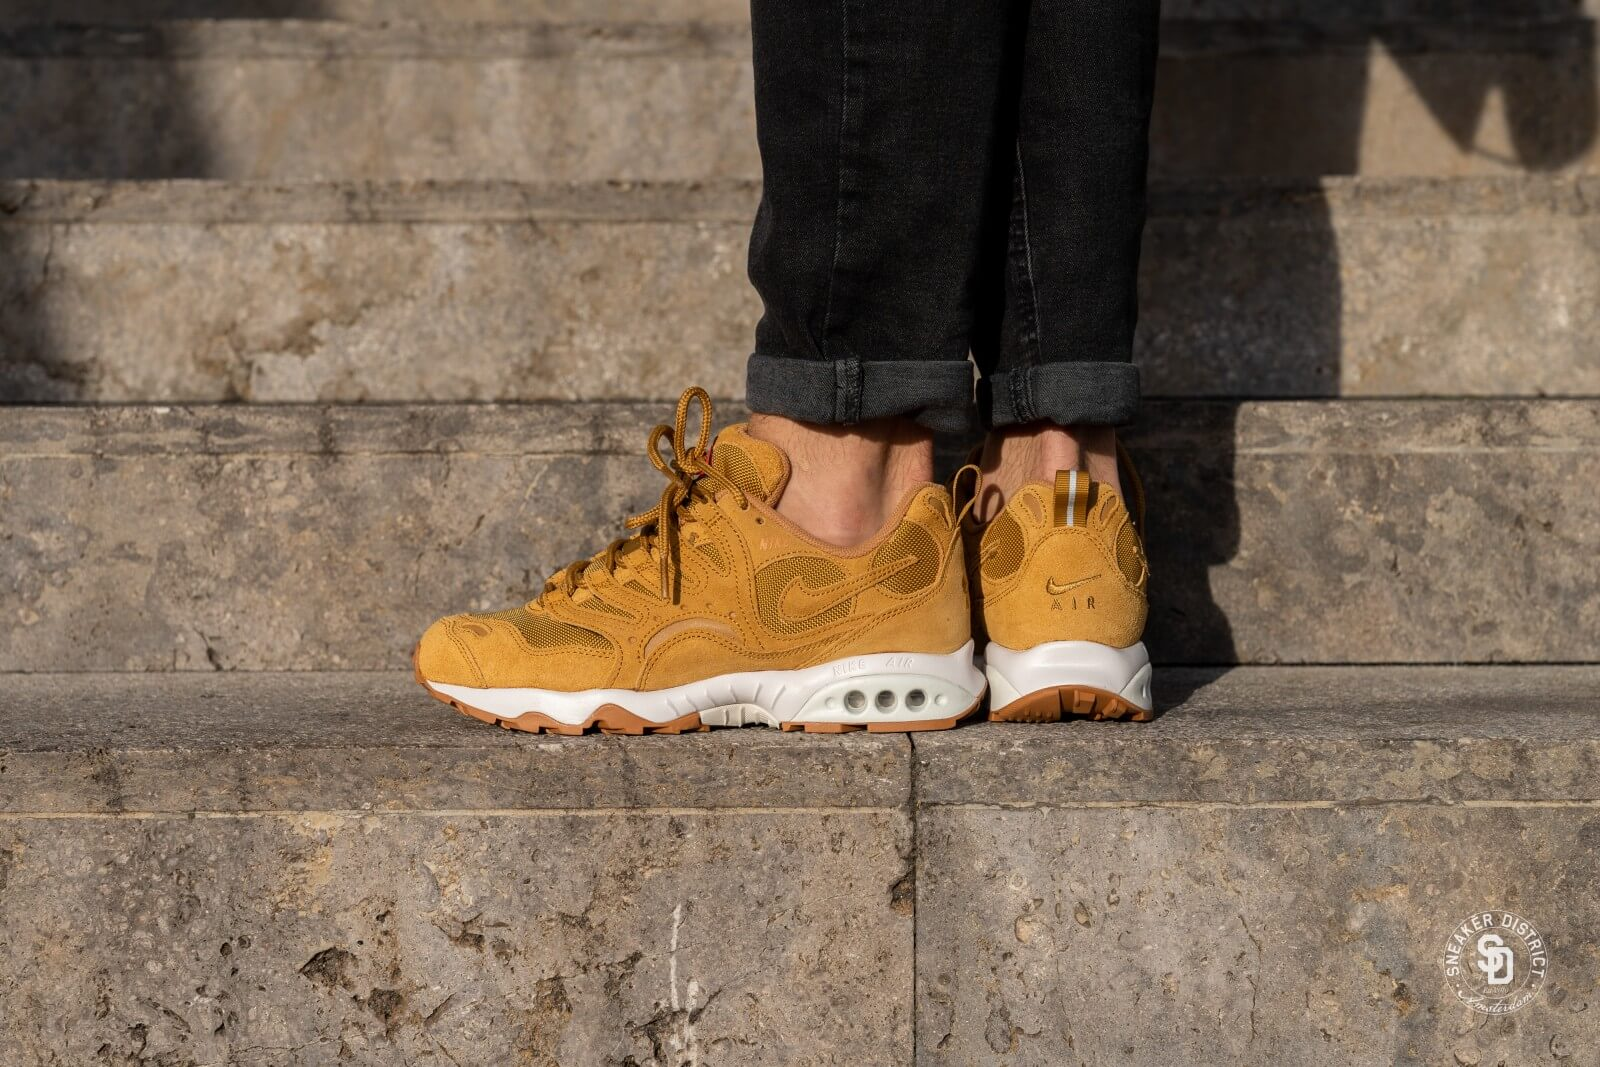 new photos picked up the sale of shoes Nike Air Terra Humara '18 Leather Wheat/Light Bone-Gum - AO8287-700